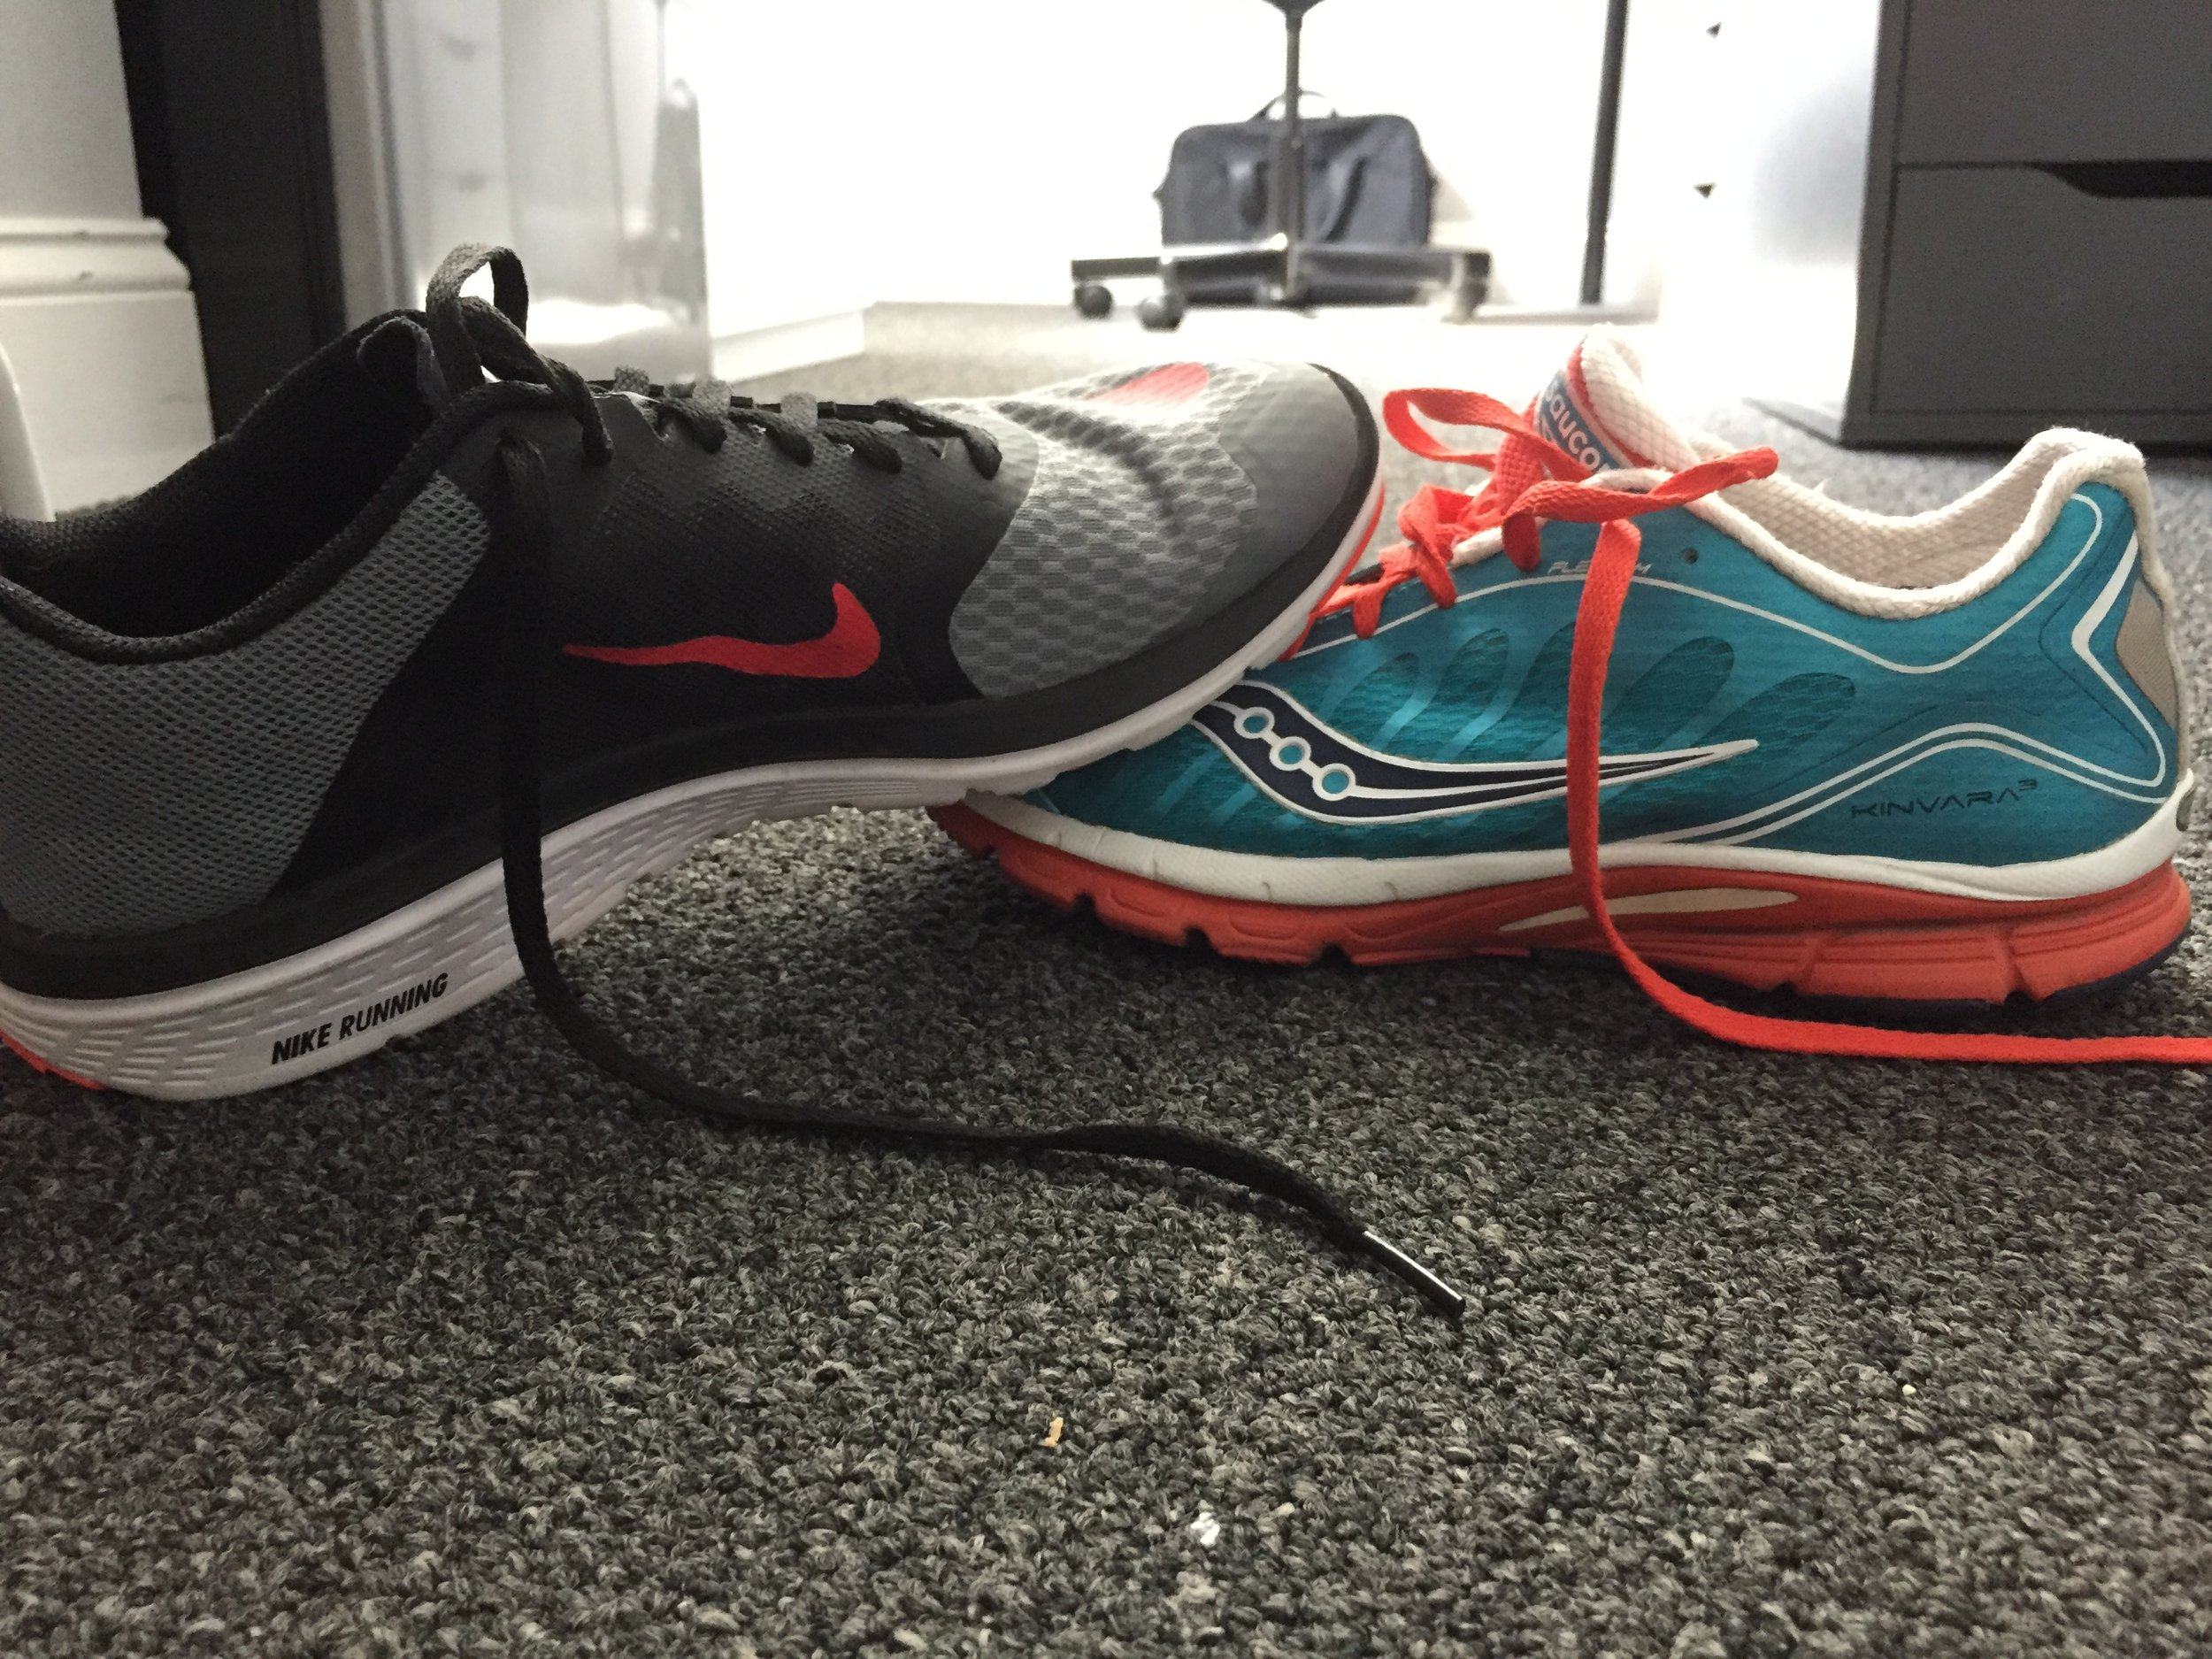 Running is a reason to by many pairs of shoes. Many.